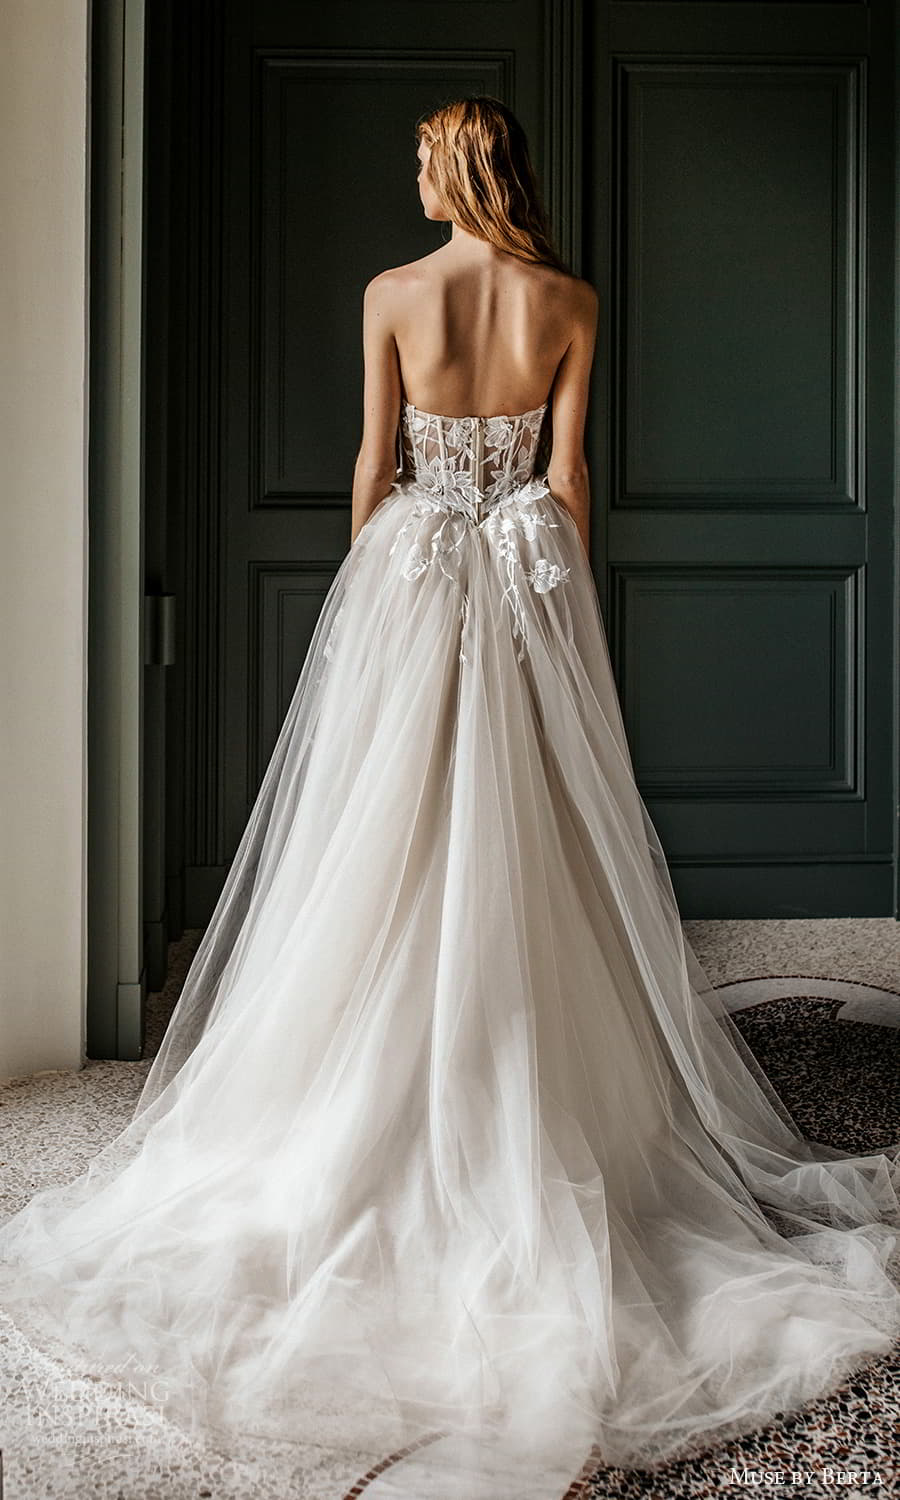 muse by berta spring 2022 bridal strapless sweetheart neckline embellished bodice a line ball gown wedding dress chapel train (14) bv